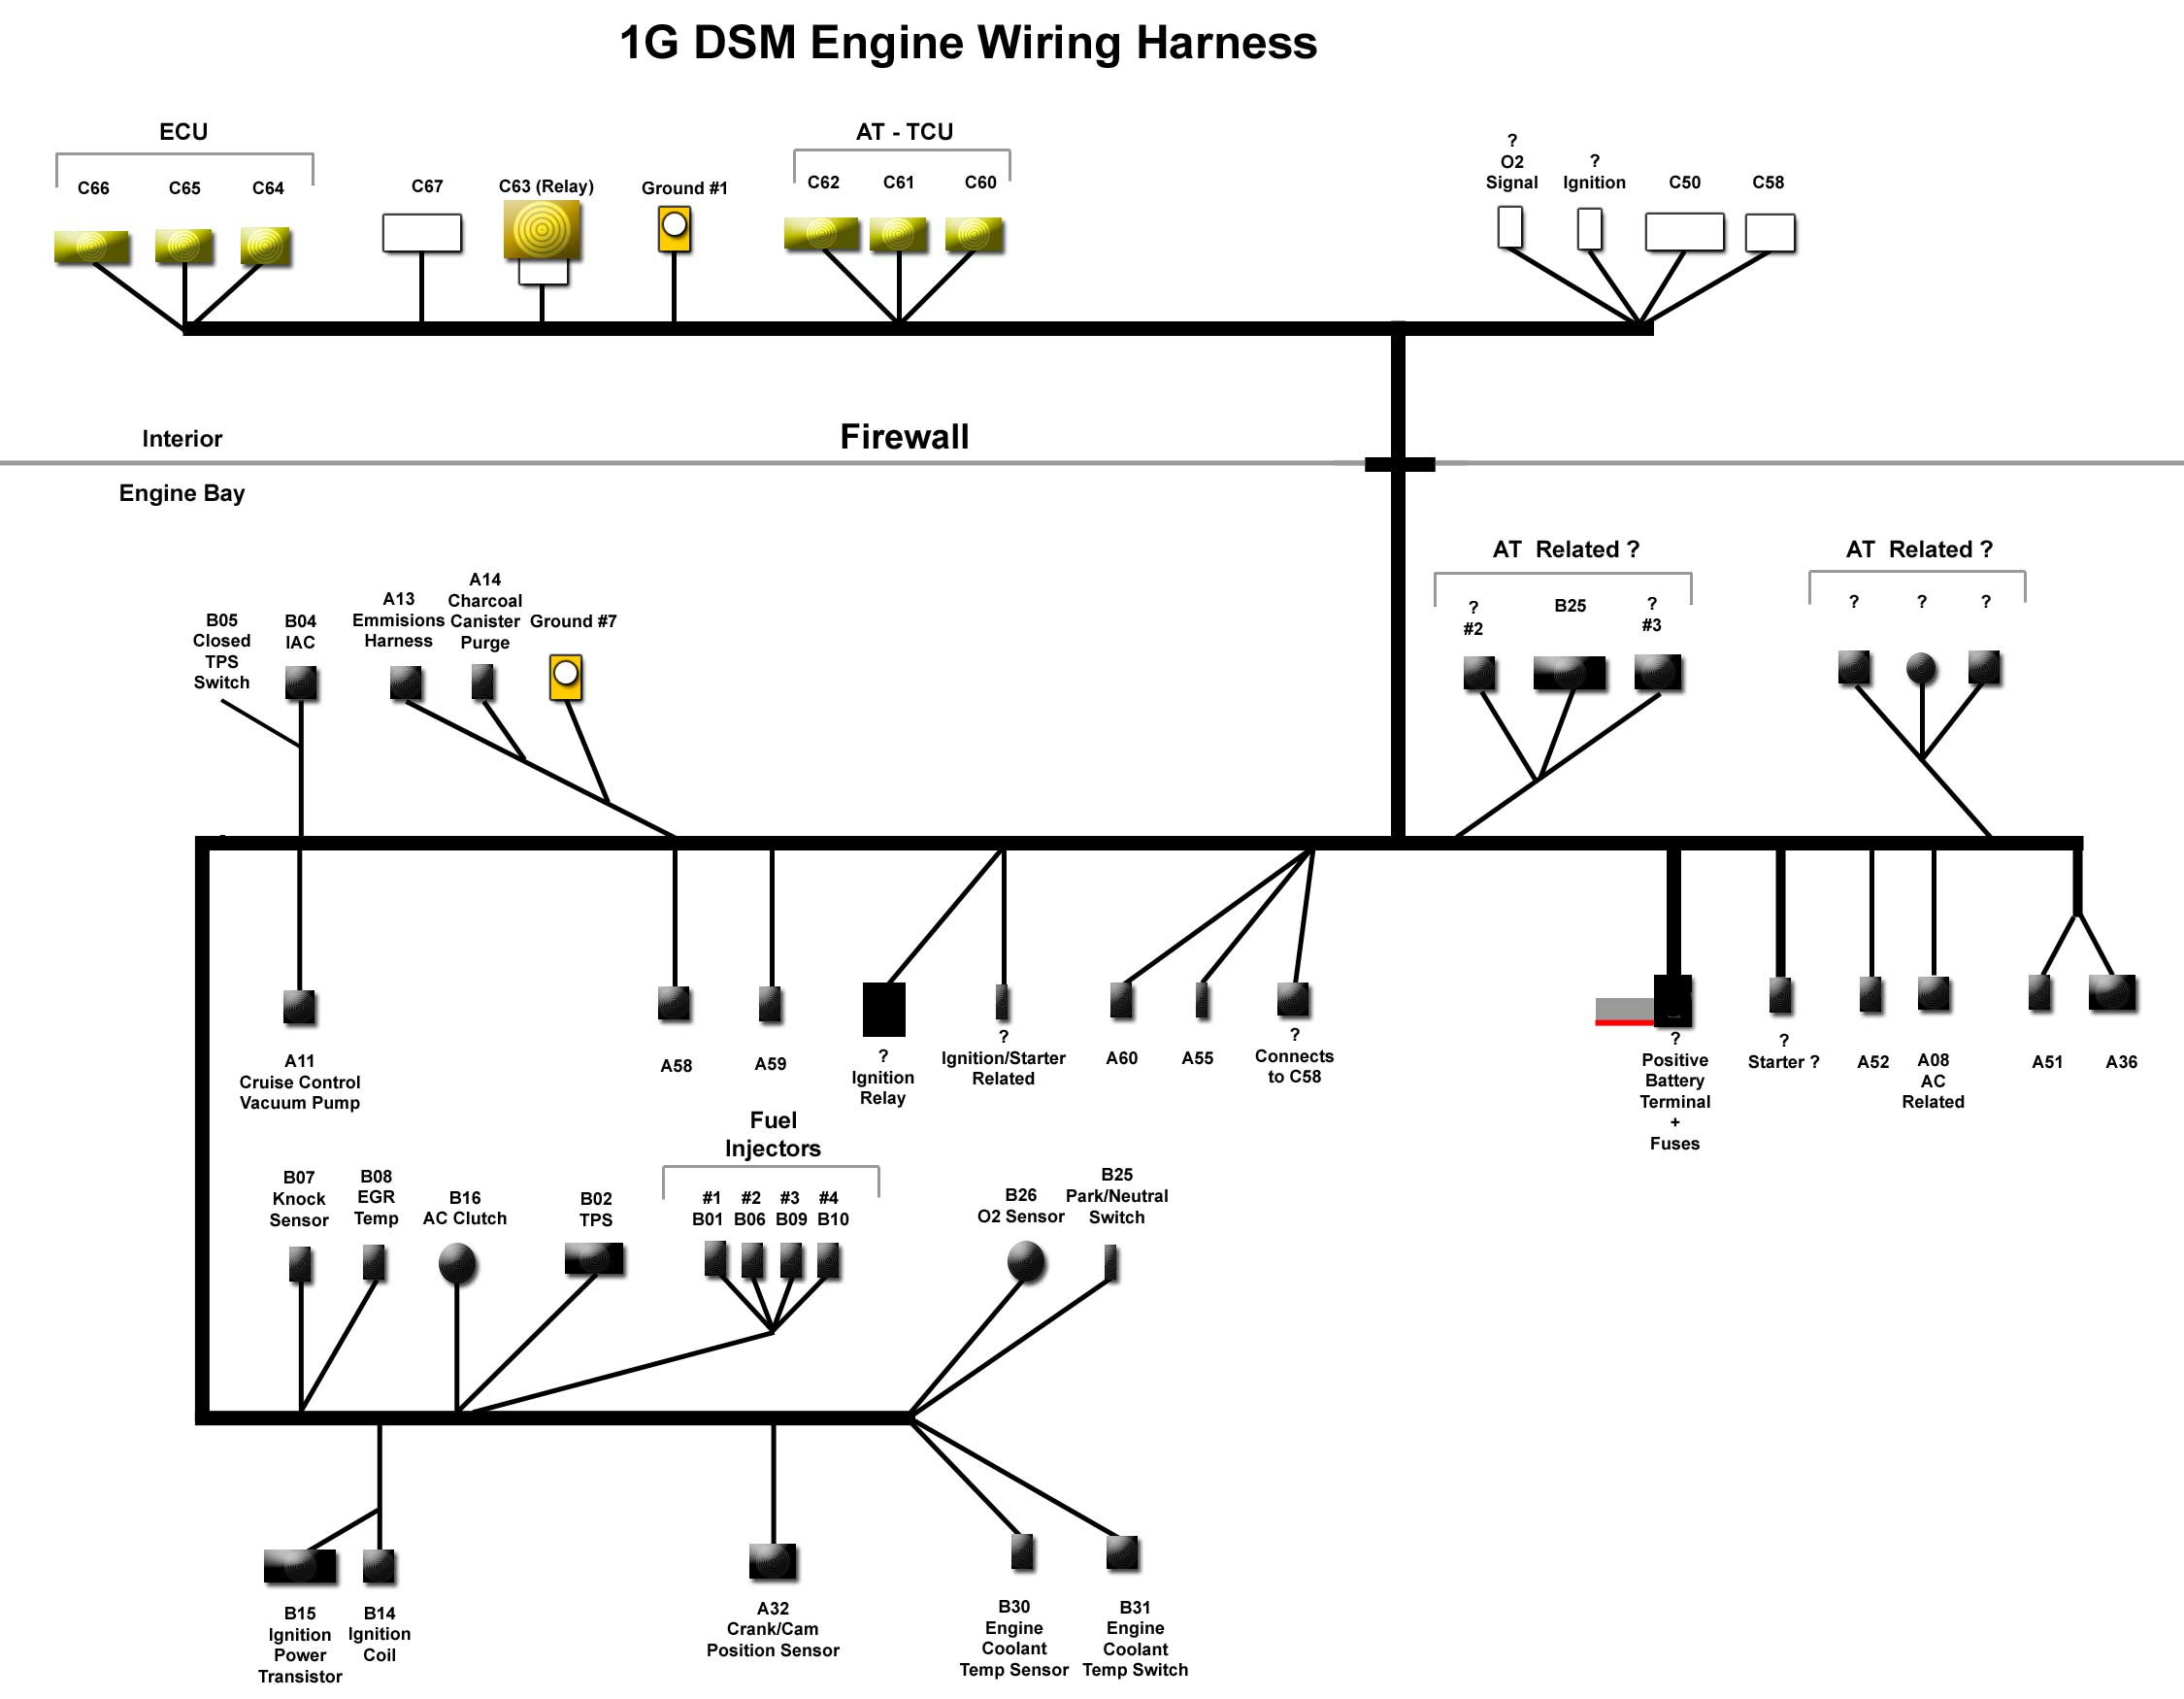 1G DSM EngineHarness diagrams 768576 vw alternator wiring diagram alternator wiring vw starter wiring diagram at alyssarenee.co